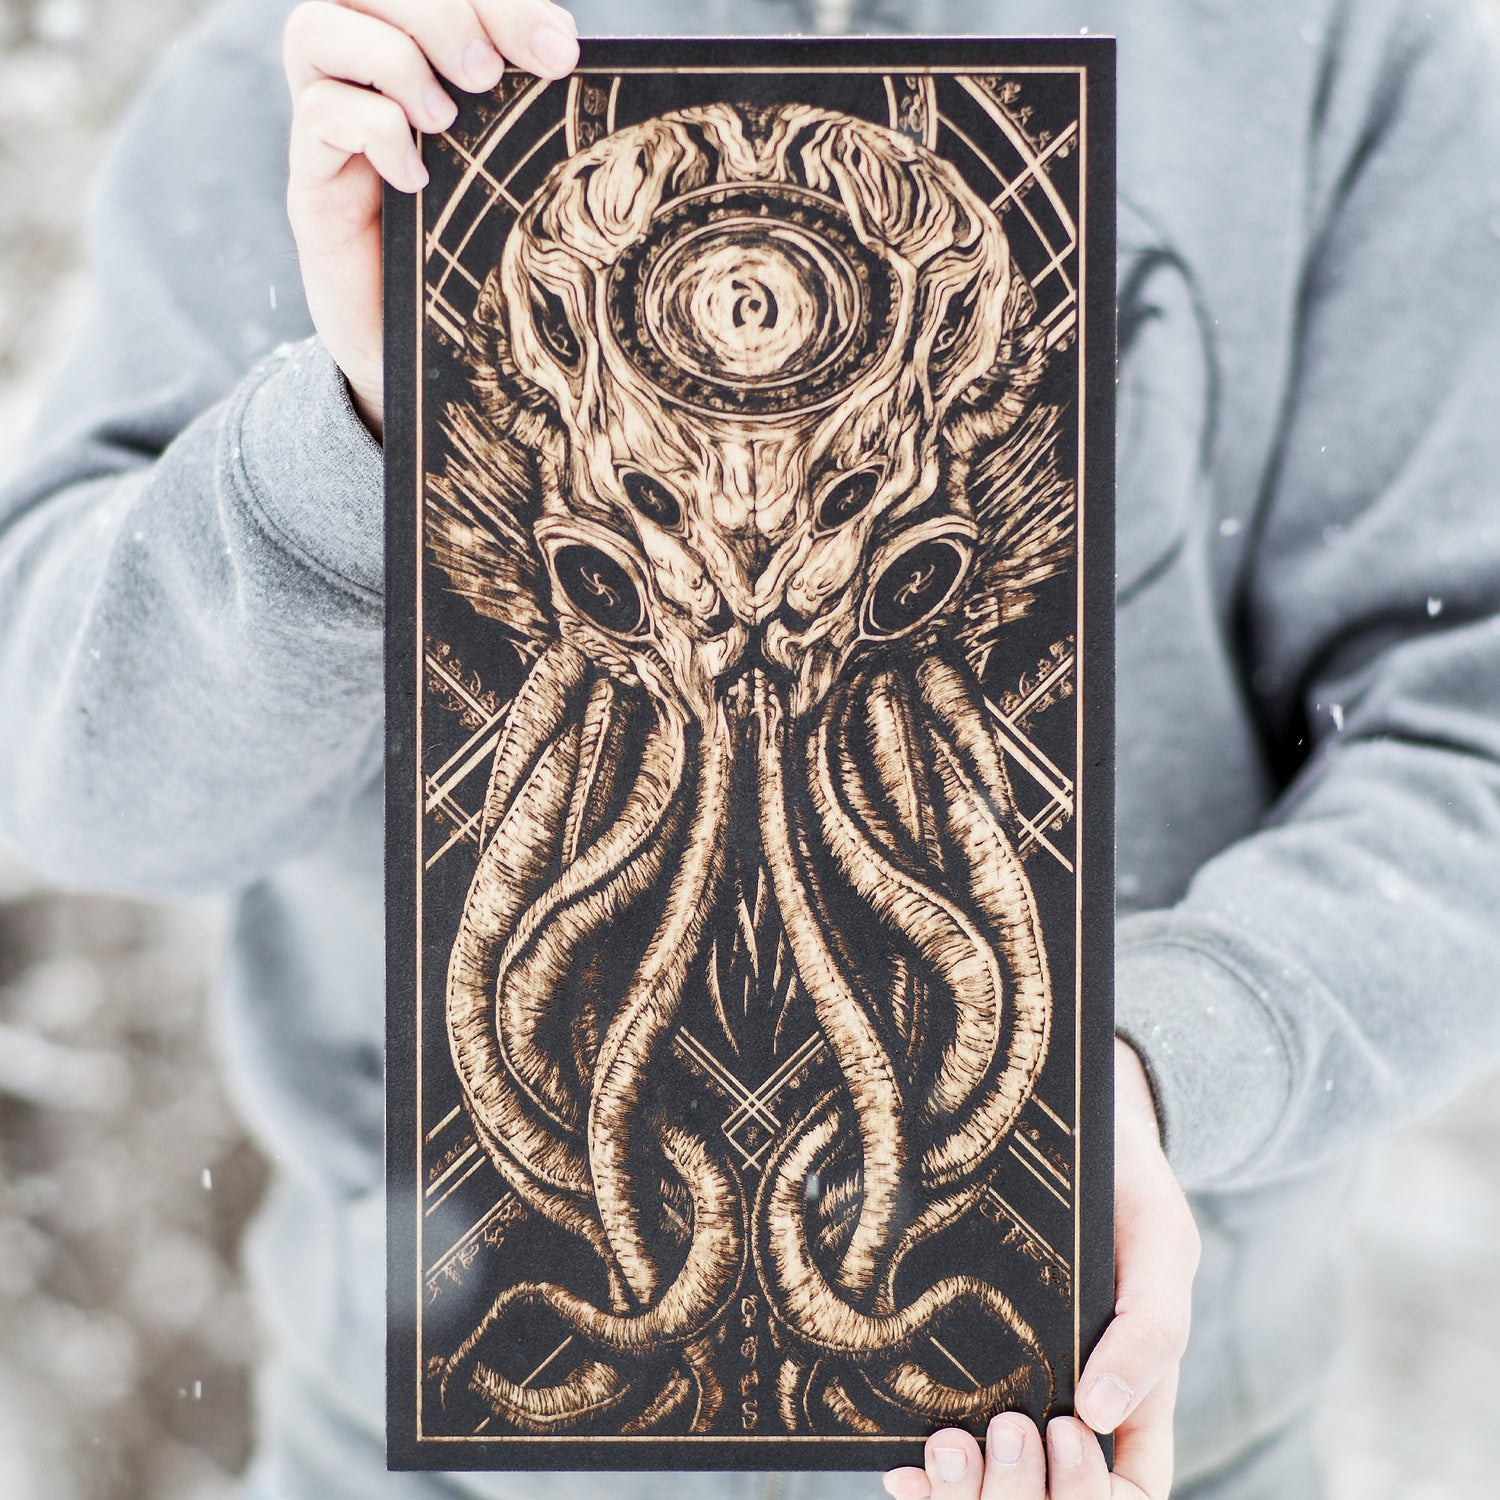 Image of Lord Cthulhu